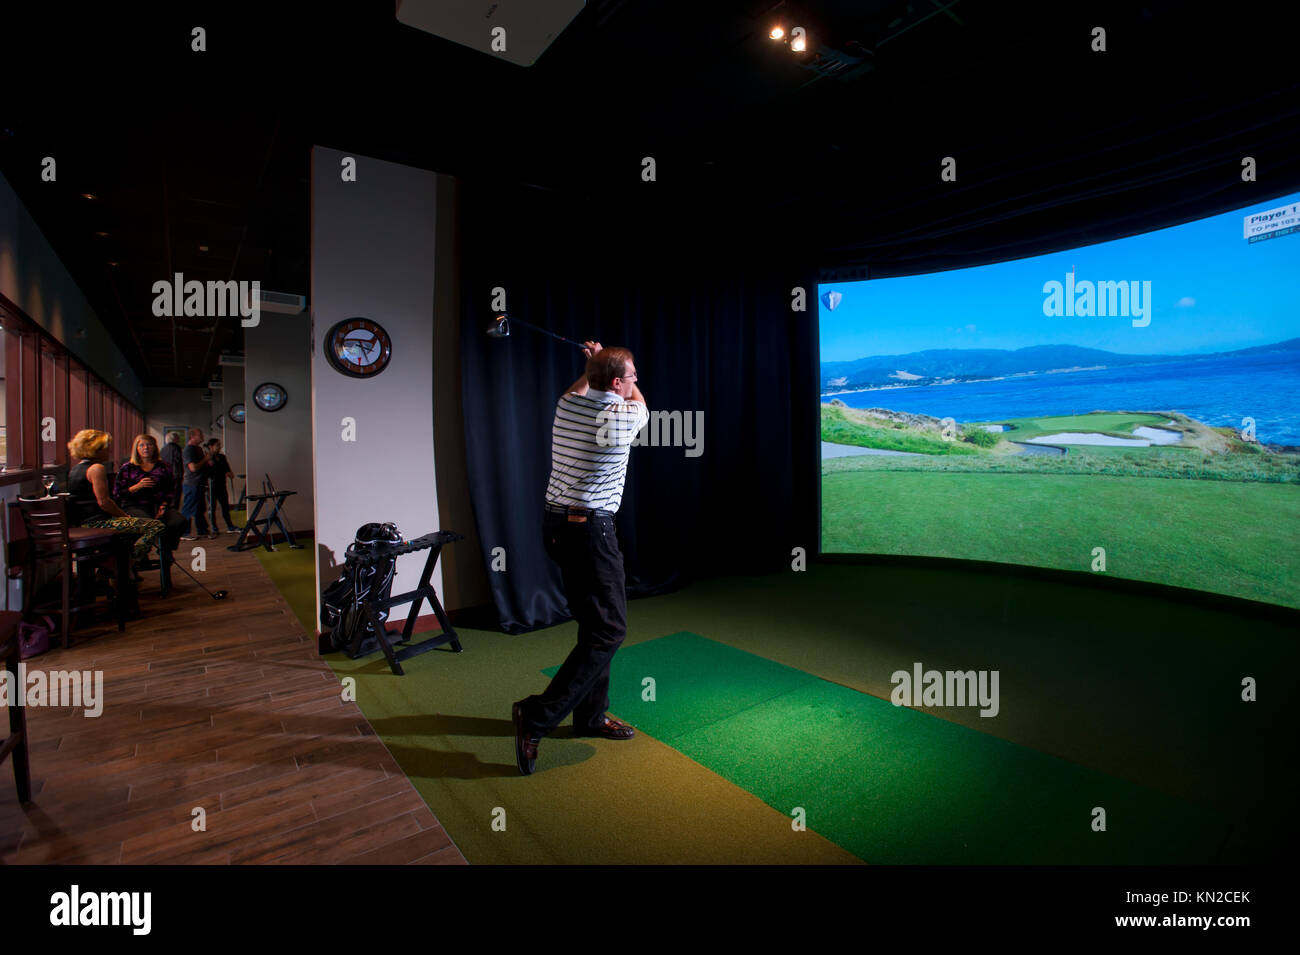 sports-indoor-simulator-virtual-golf-at-revolution-golf-and-grille-KN2CEK.jpg